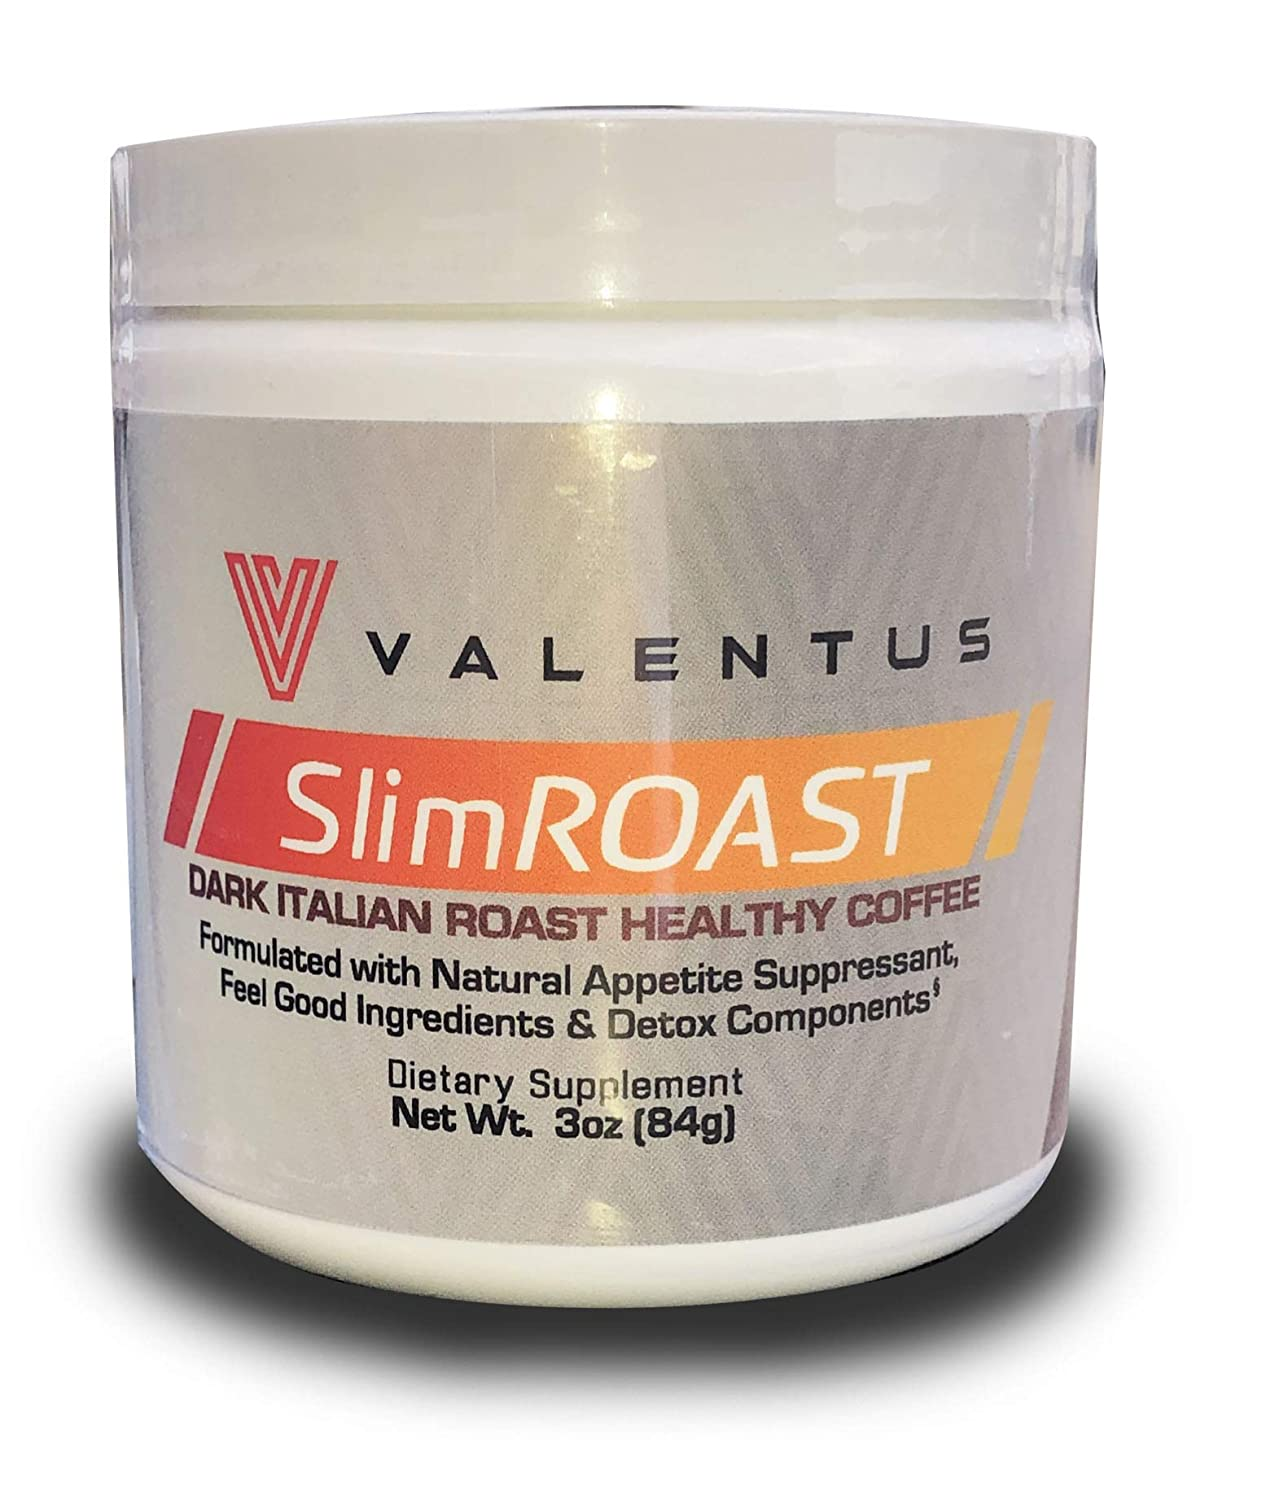 VALENTUS Slim Roast Italian Dark Roast Coffee 3 Oz Canister 24 Servings